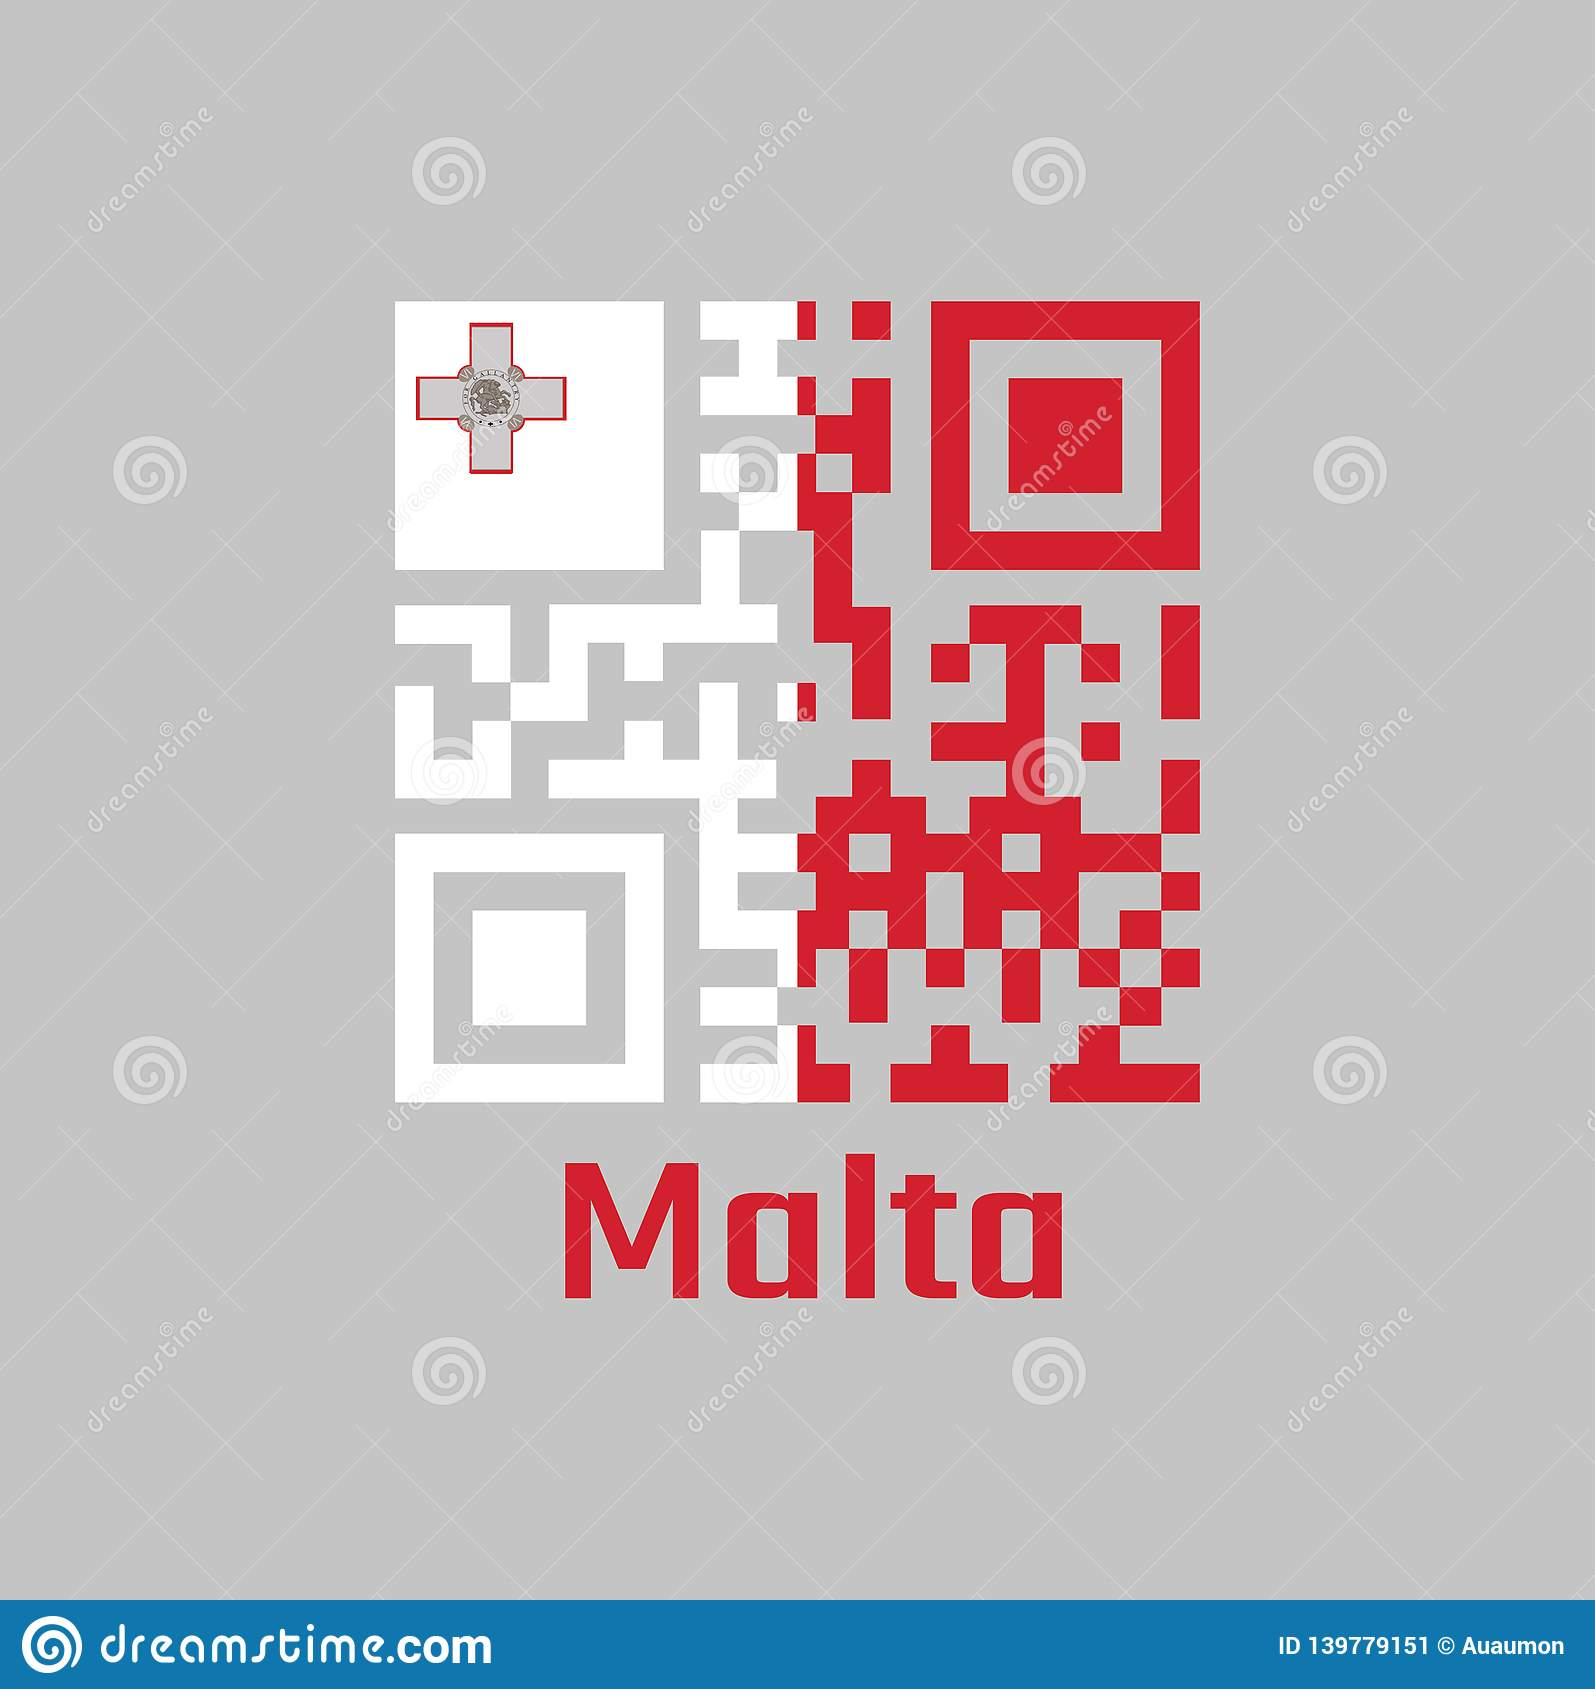 7a2bf273a773 QR code set the color of Malta flag. A vertical of white and red with the  representation of the George Cross edged with text Malta